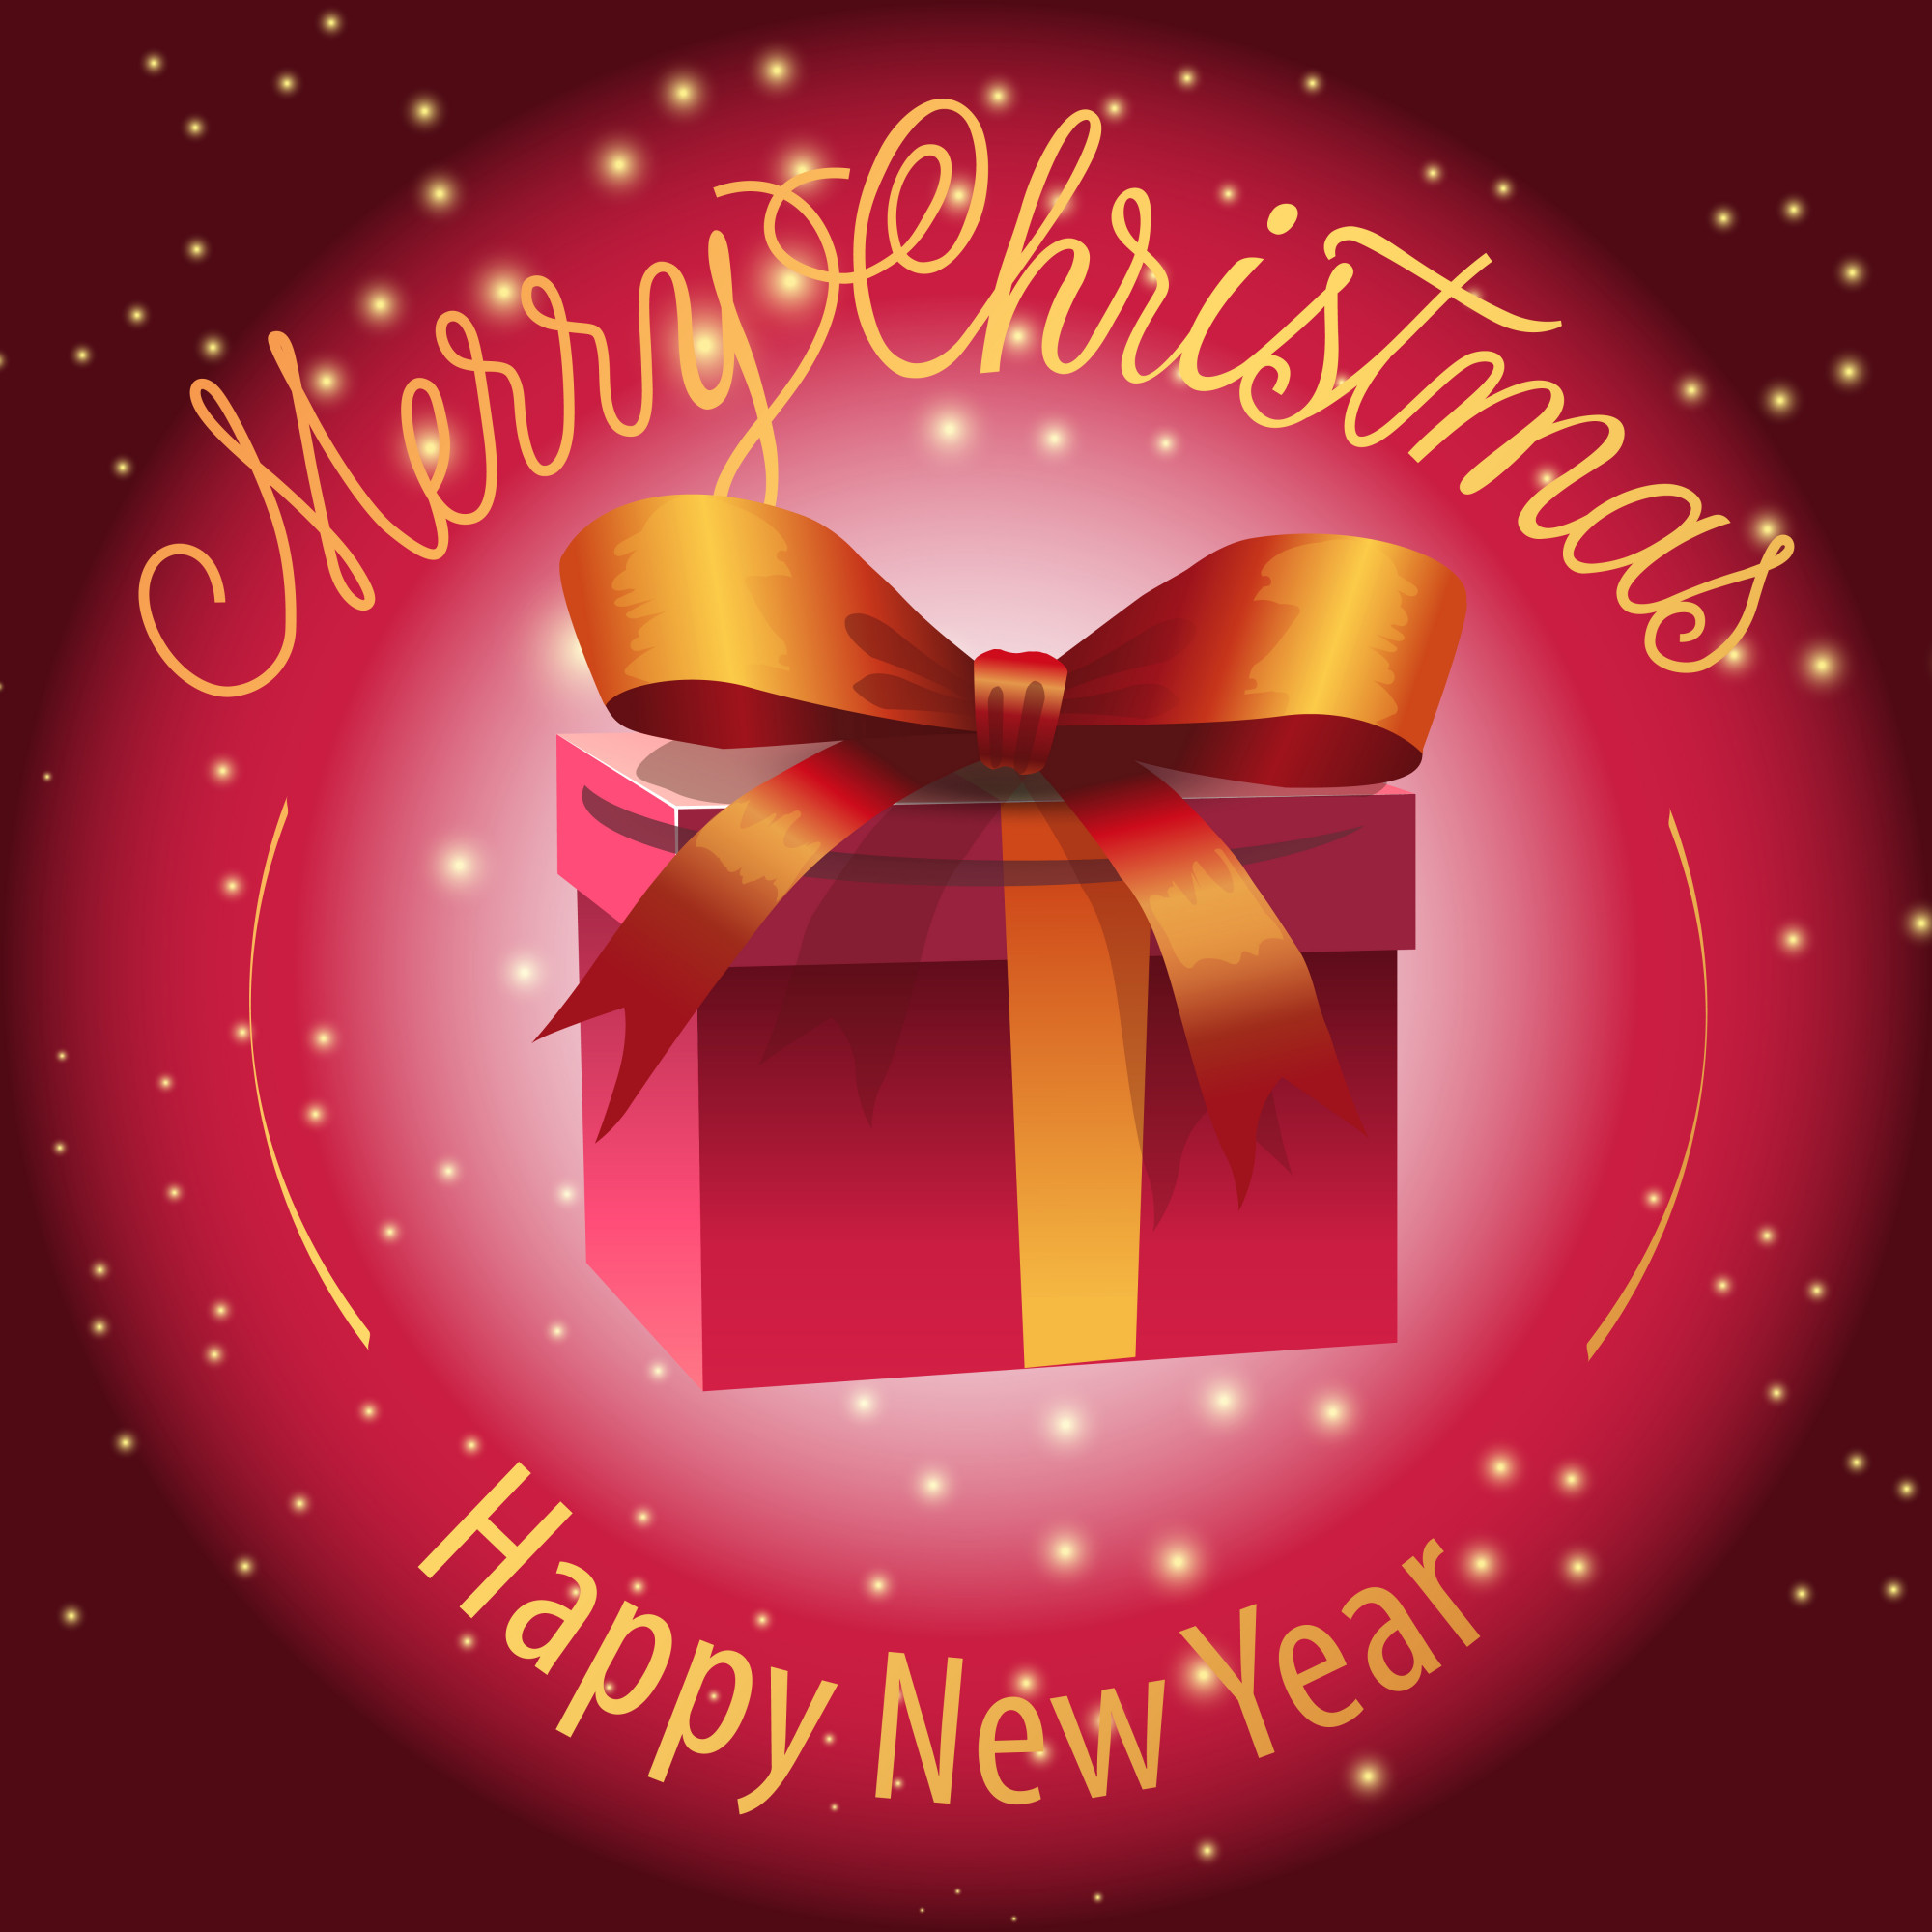 Happy New Year, Merry Christmas lettering with gift box